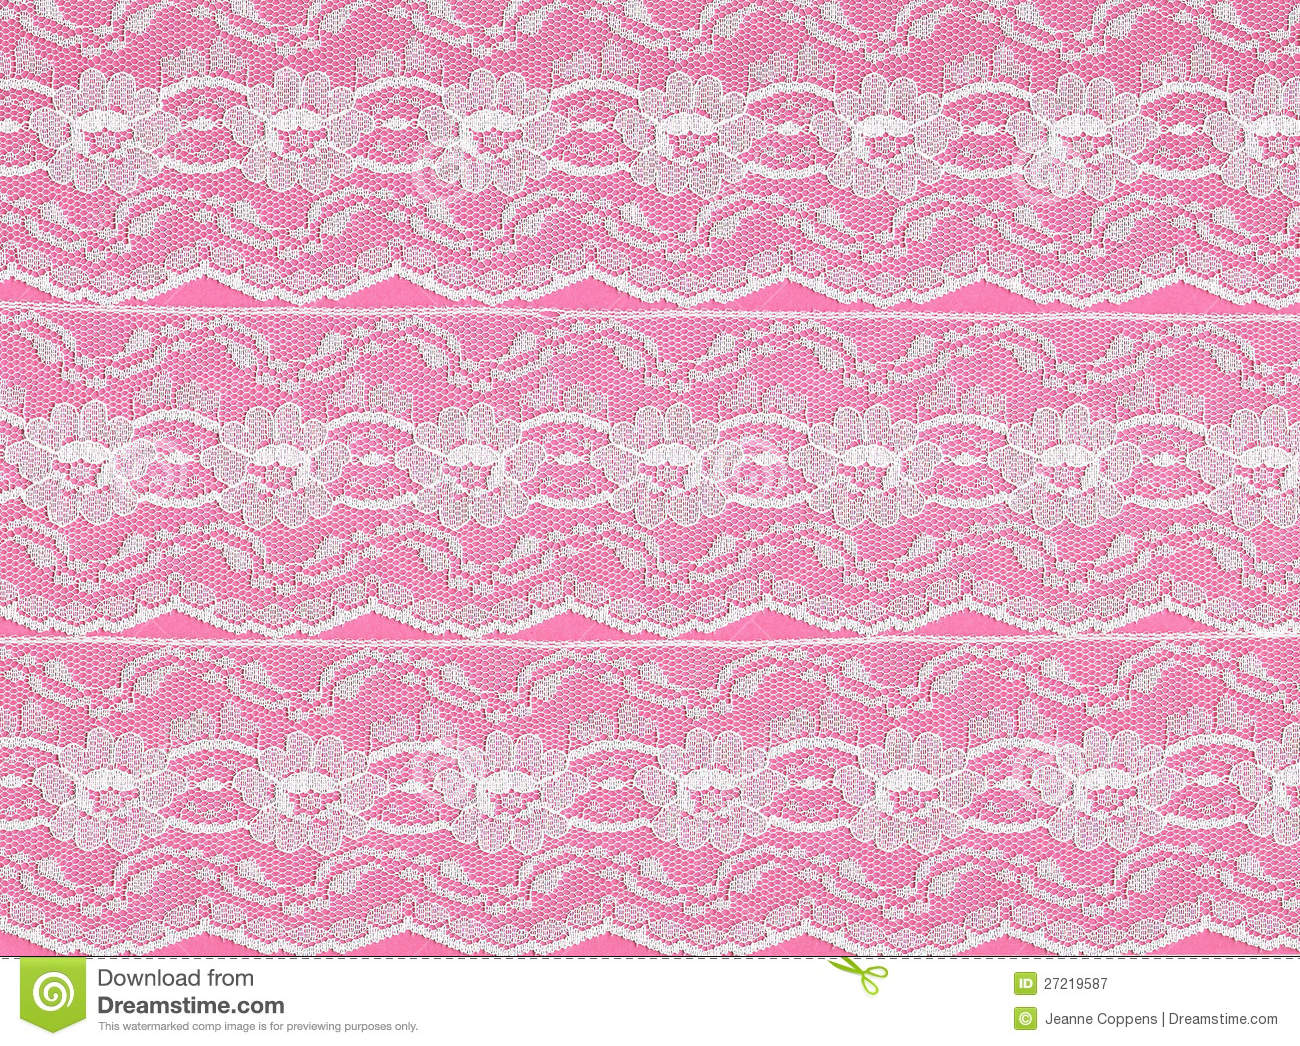 Pink Lace Border Background Royalty Free Stock Photography ...